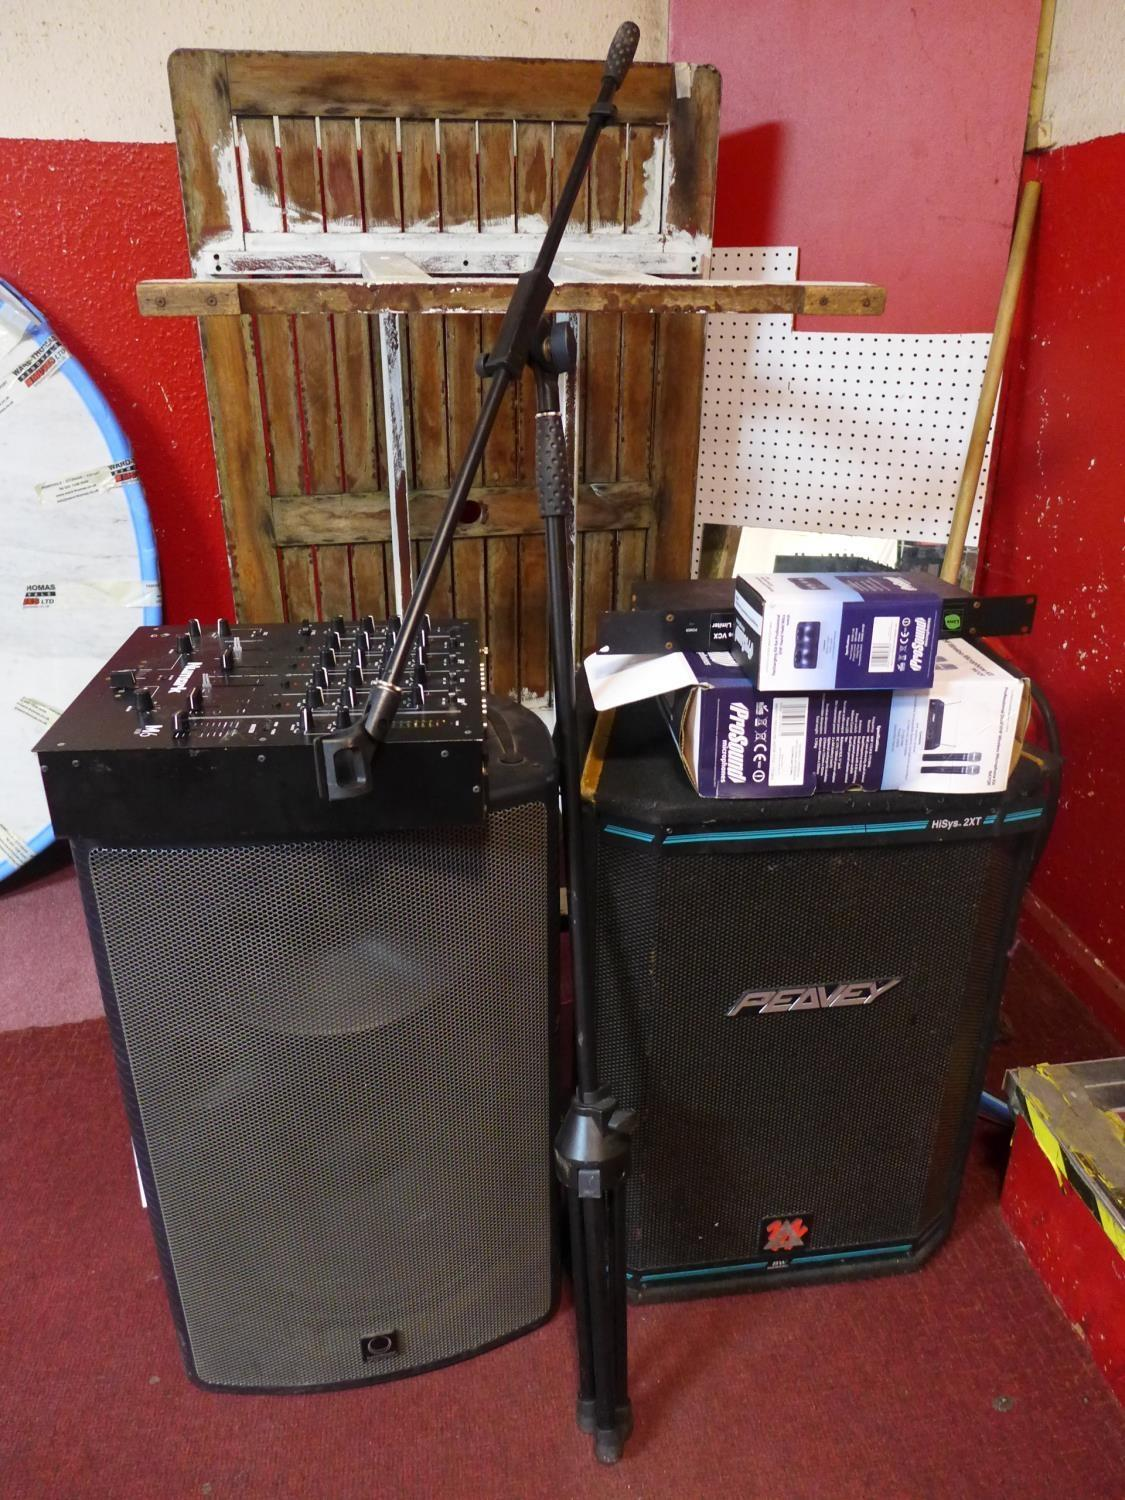 Lot 559 - A Peavey HIsys 2XT speaker together with a turbo sound speaker, a Numark mixer and other items